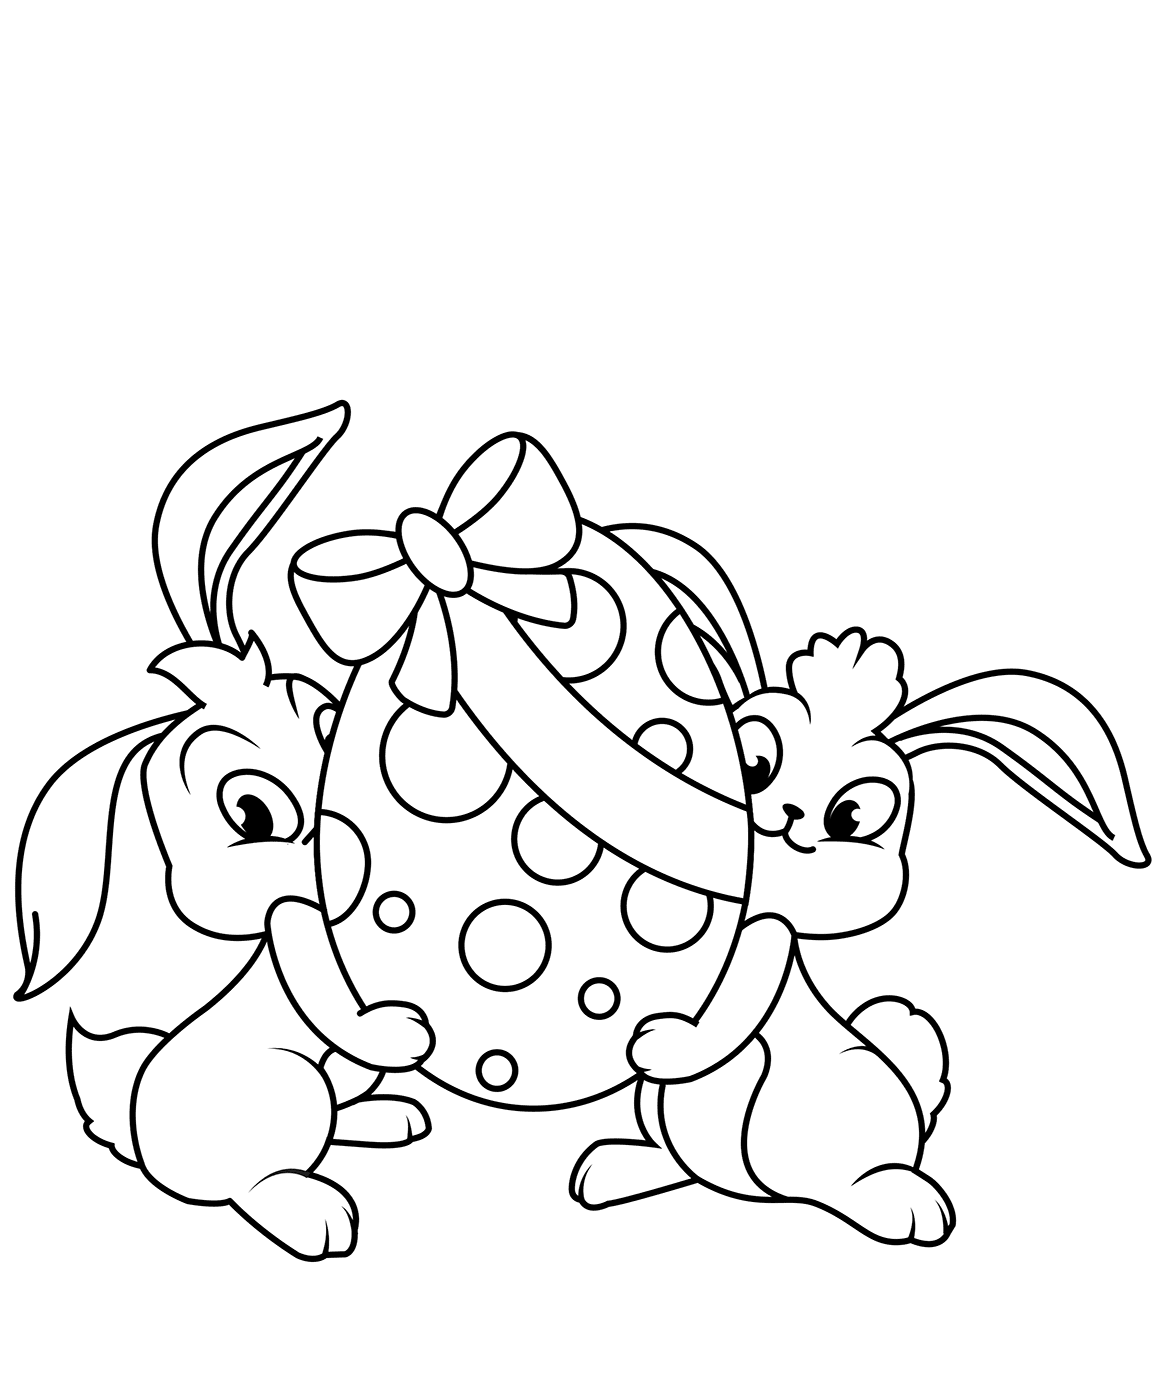 easter bunny coloring pictures 16 easter bunny coloring pages coloring pictures bunny easter